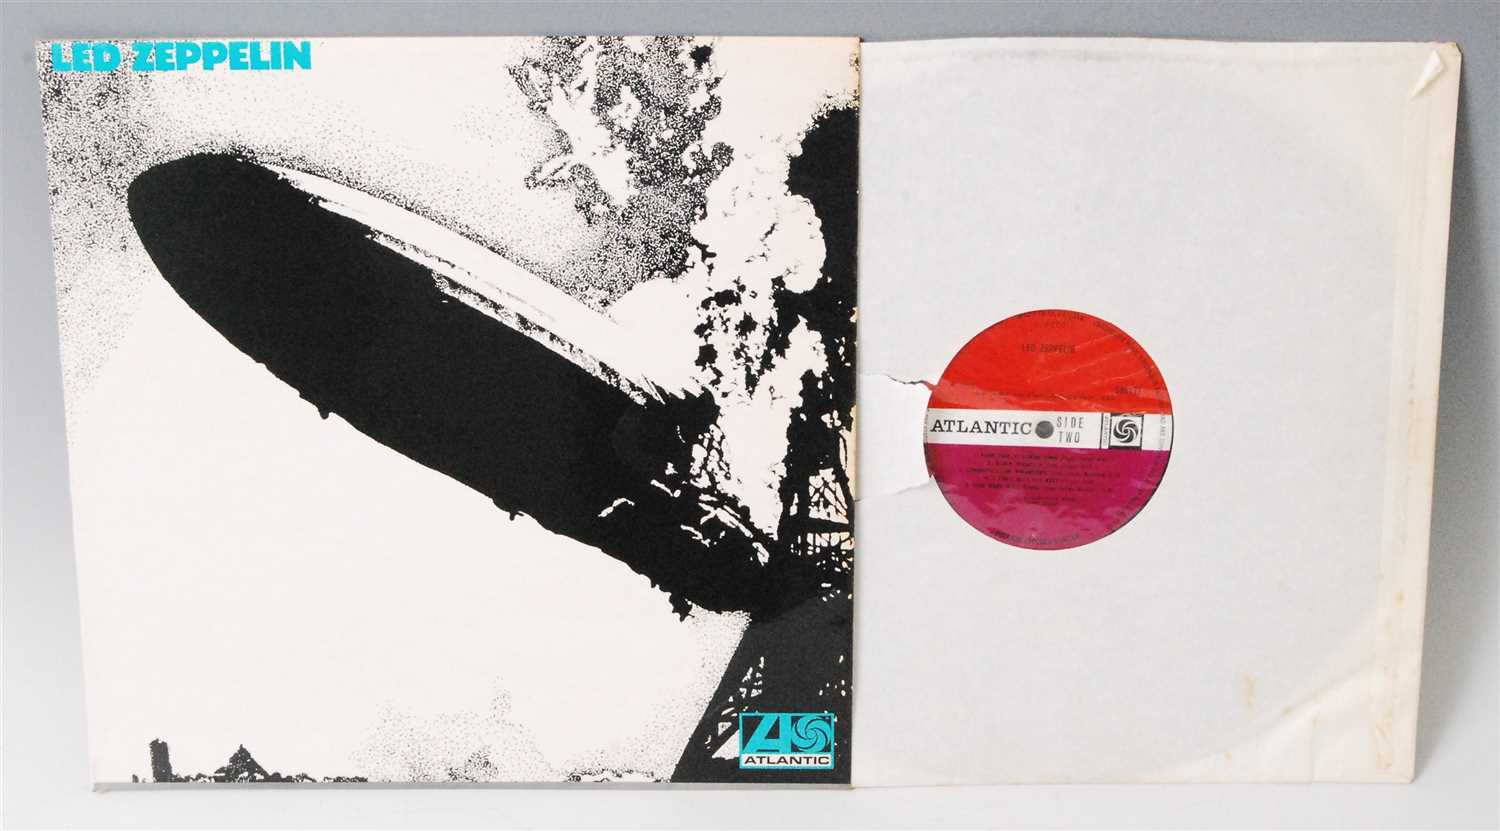 Lot 708 - Led Zeppelin, Led Zeppelin I